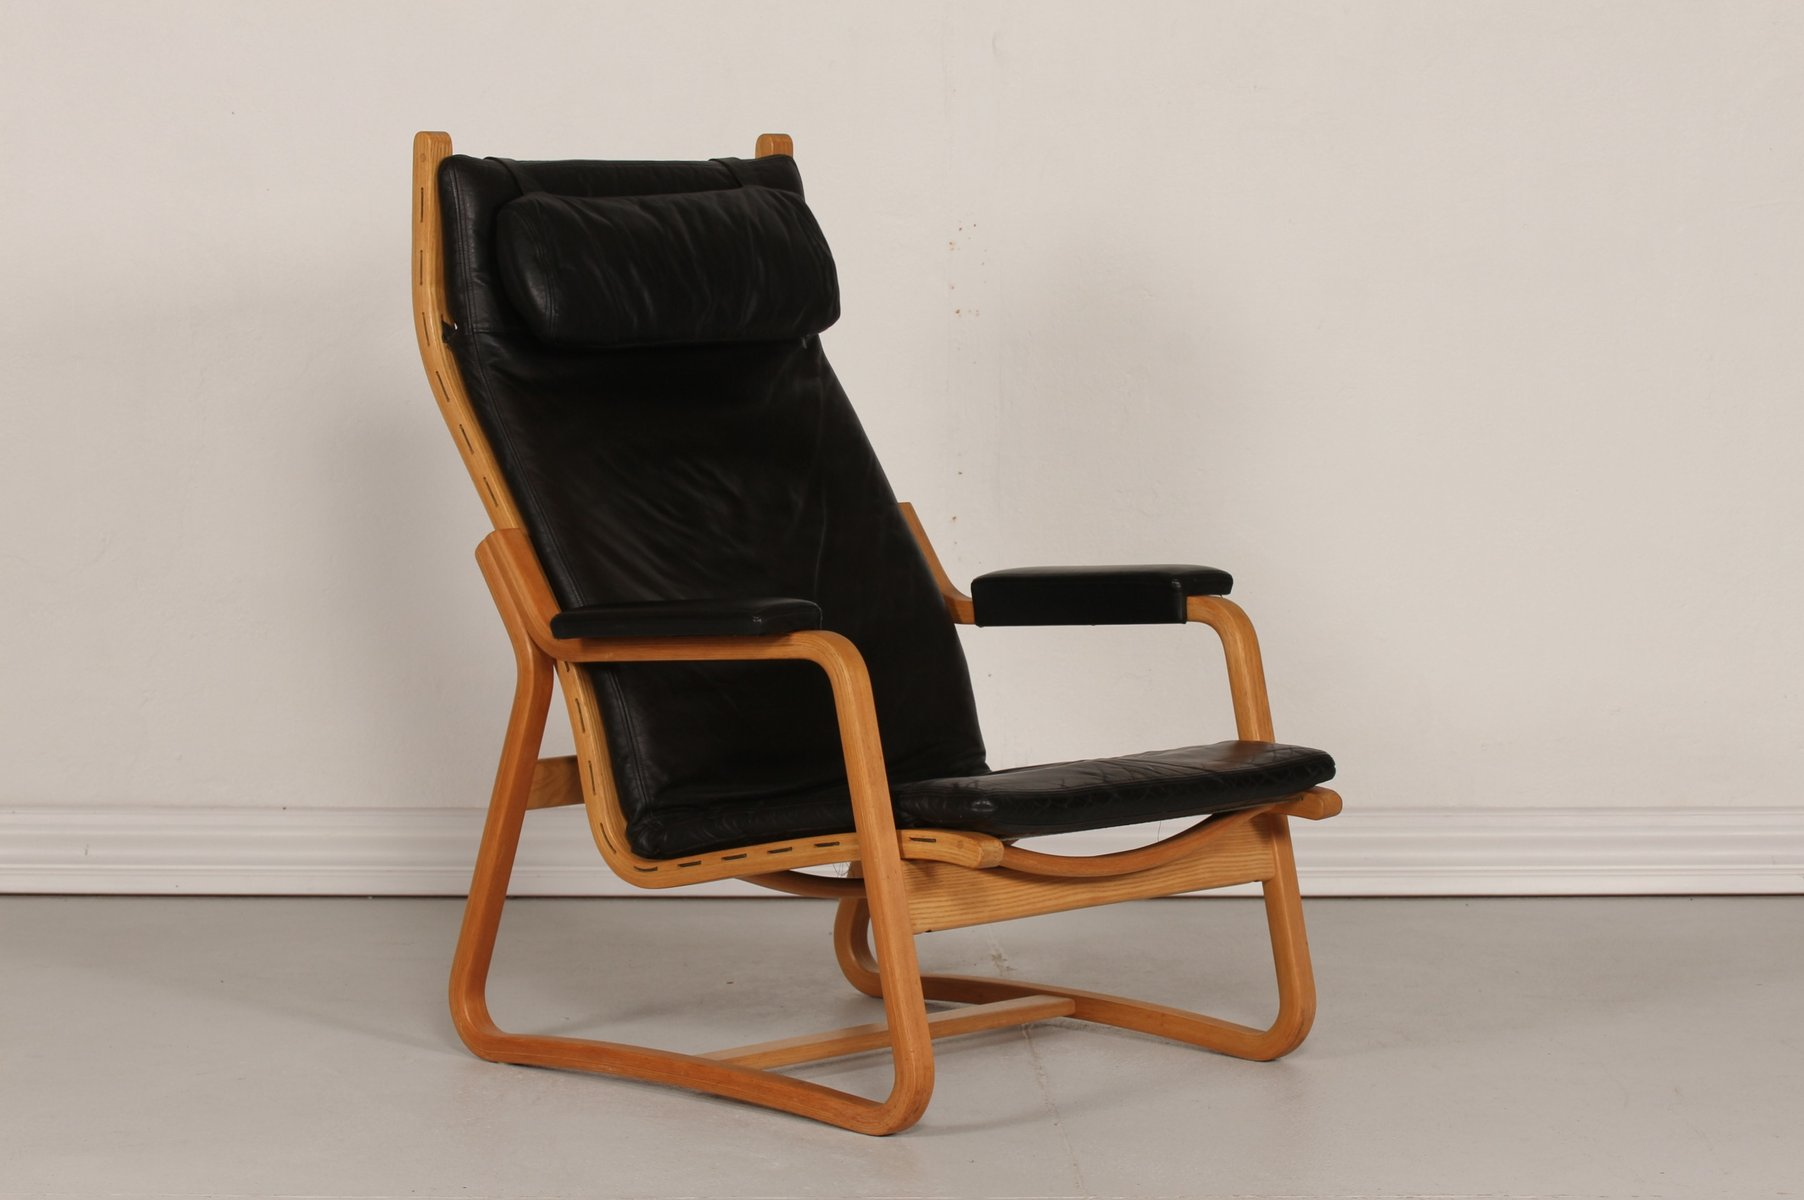 mid century danish black leather chair by ditte adrian heath for